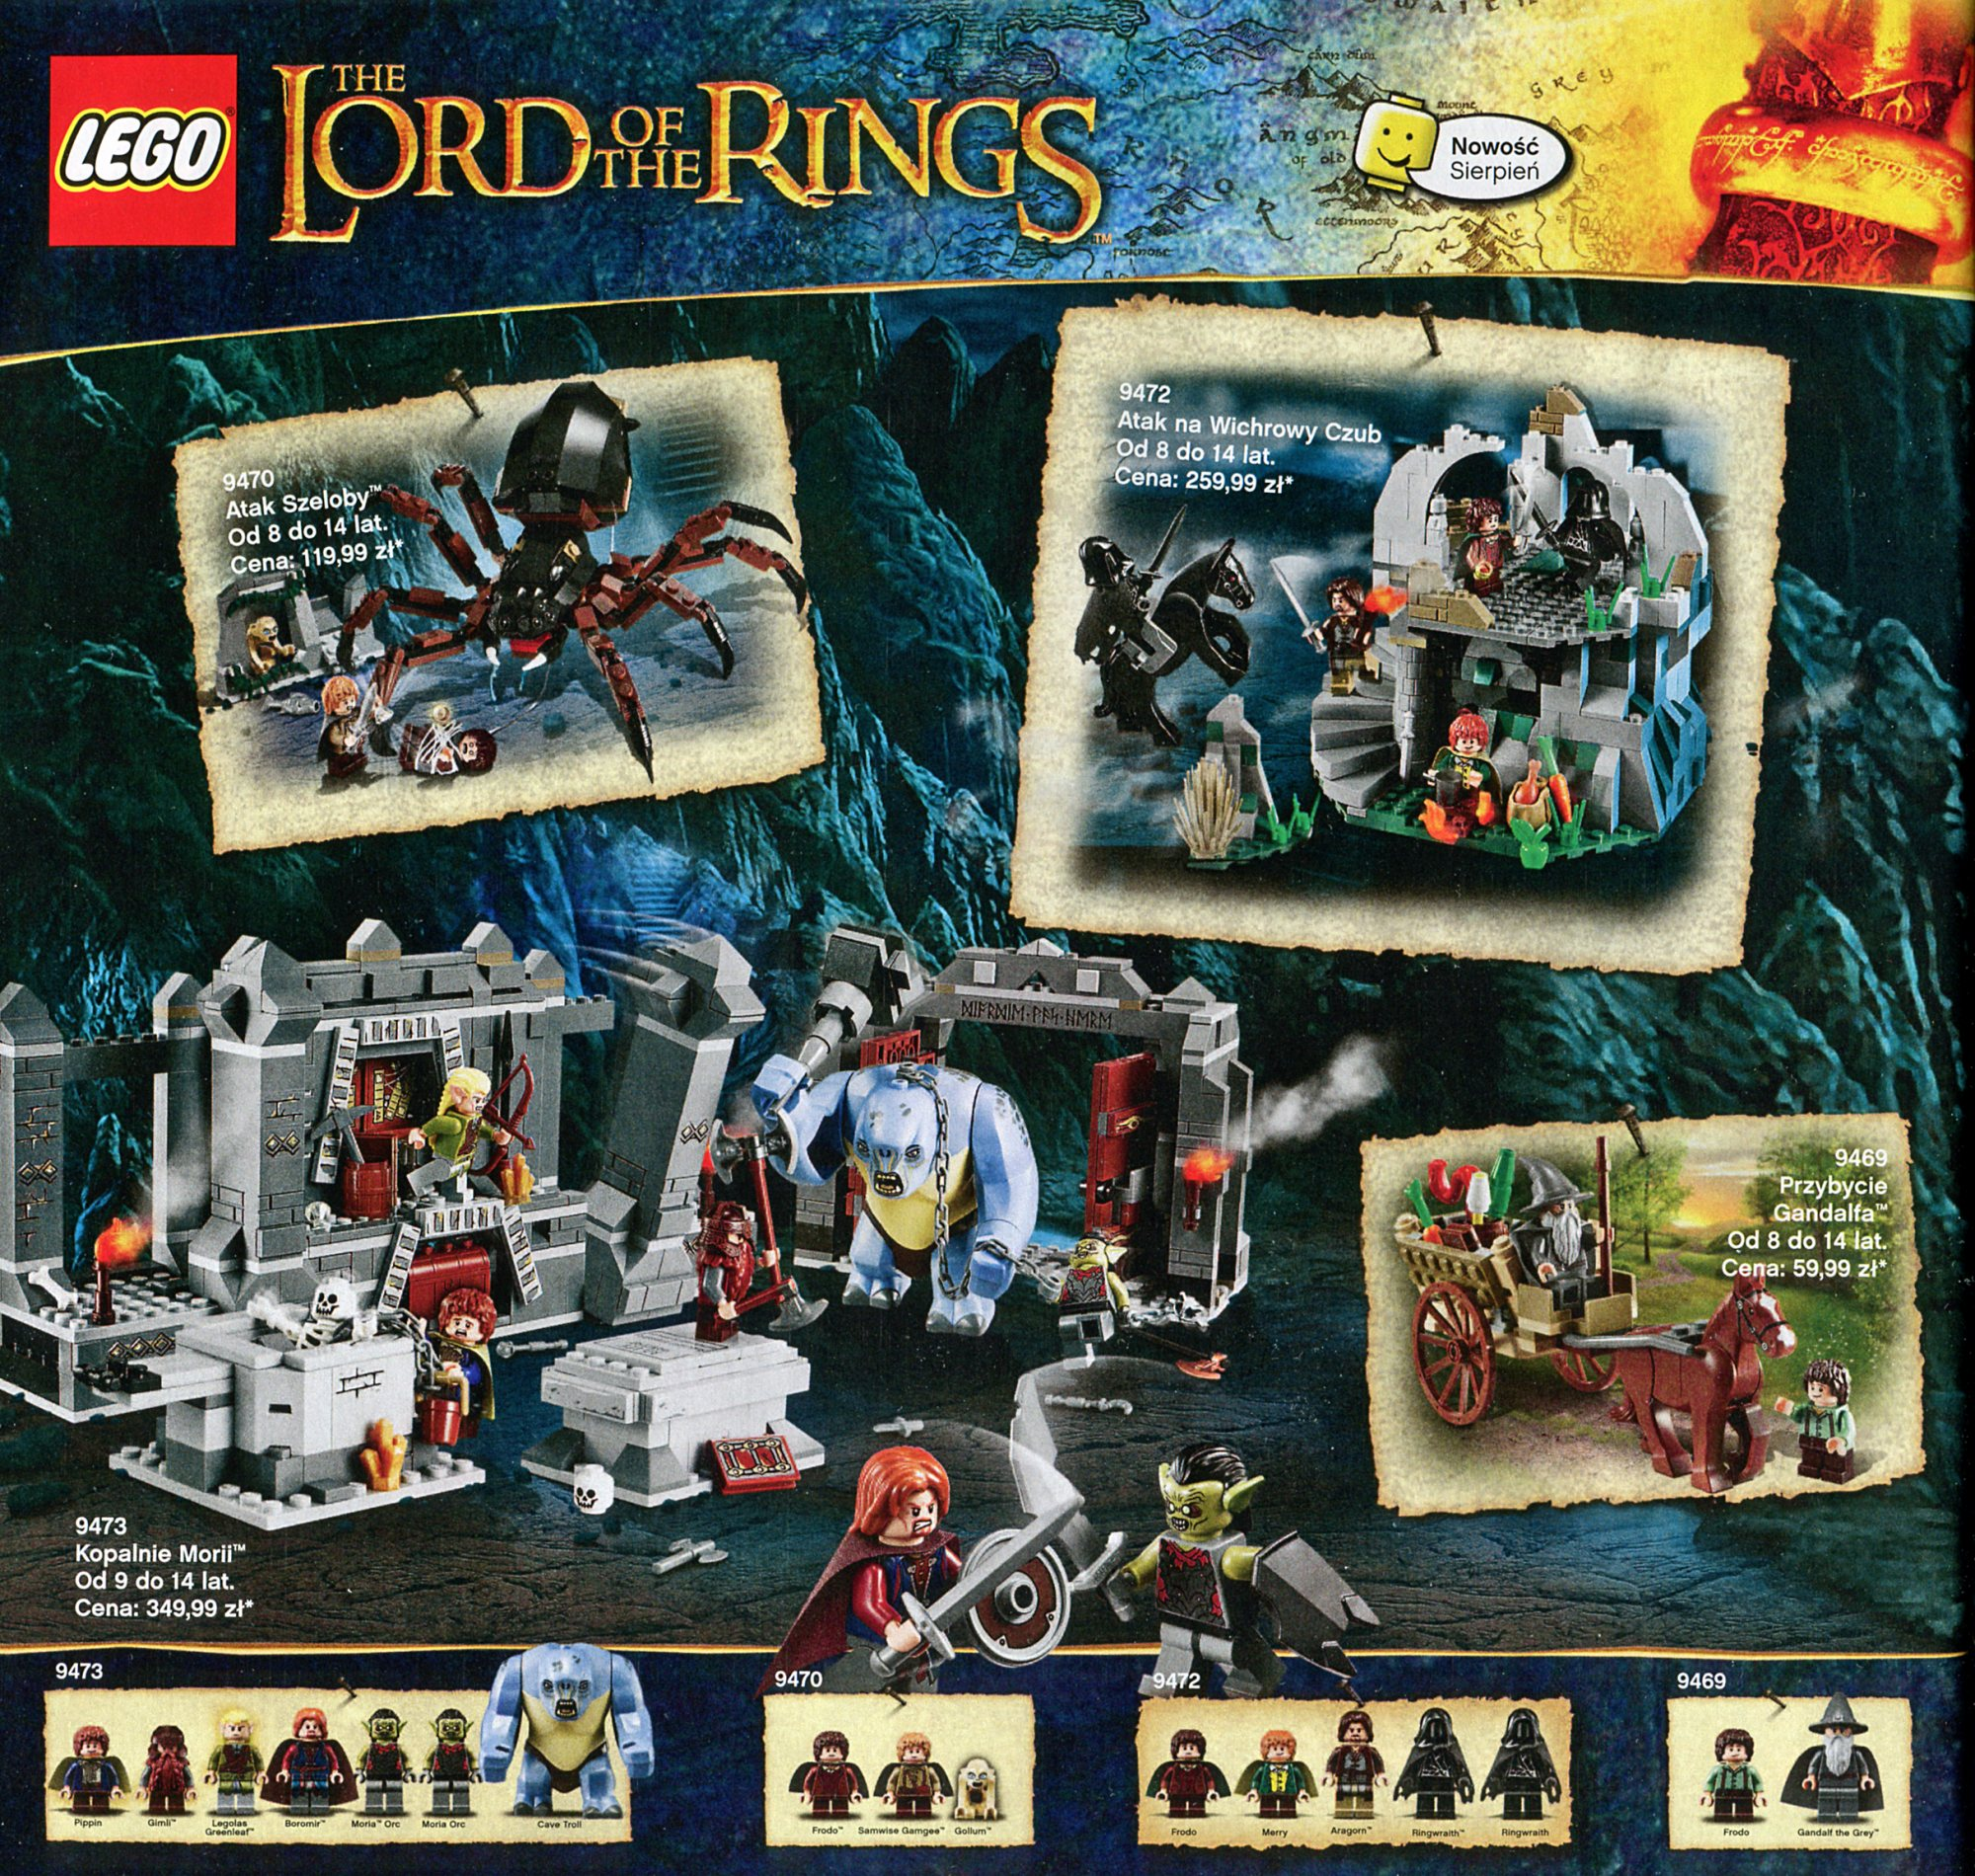 LEGO KATALOG 2012 DOWNLOAD